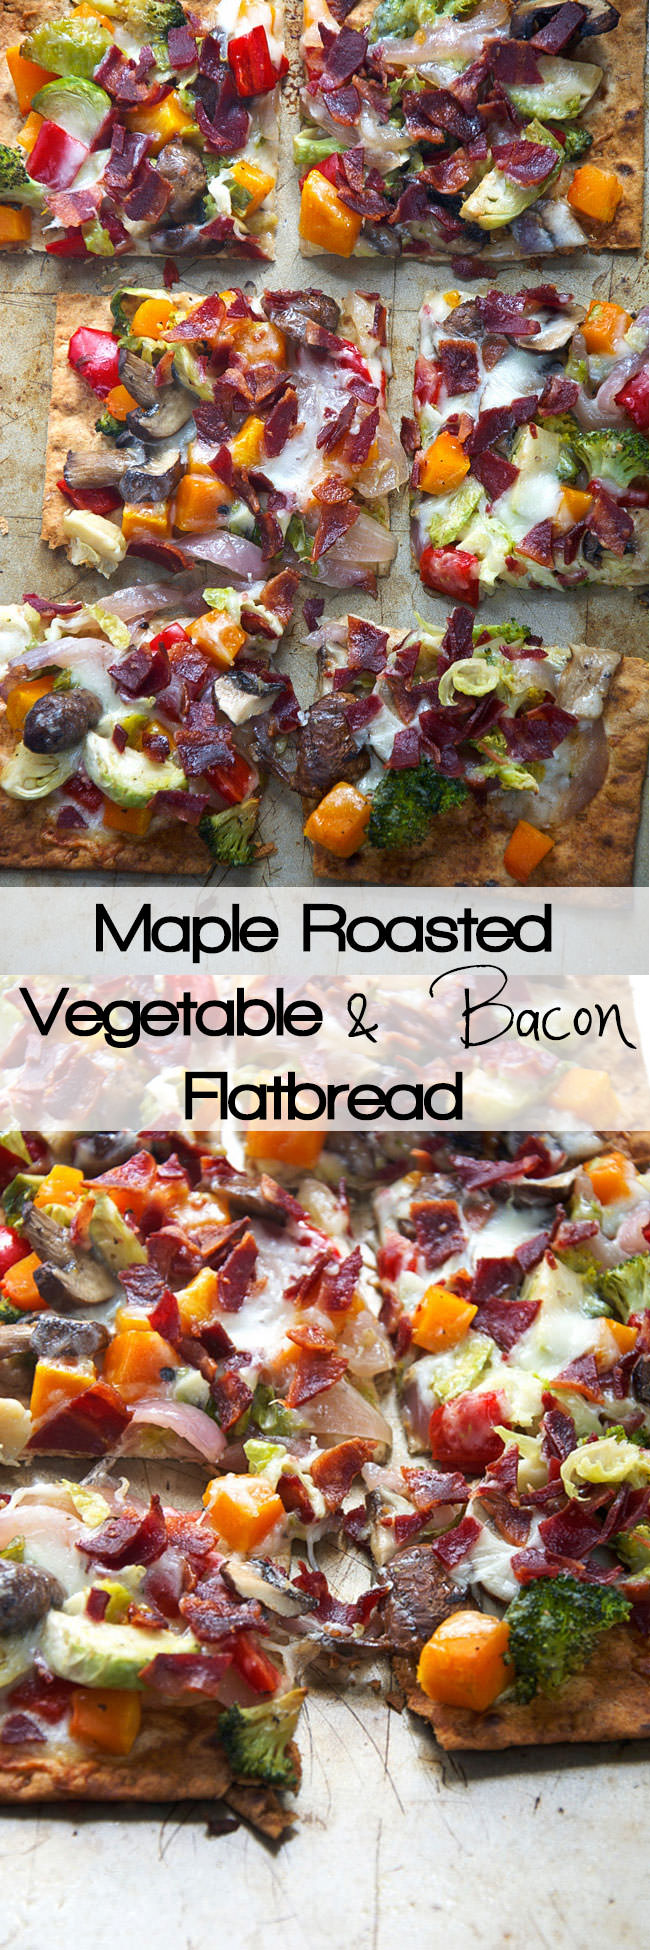 Thin and crispy lavash is used as the base for this flatbread, then topped with autumn, maple roasted veggies, crispy bacon and creamy fontina for a flatbread that will please anyone!